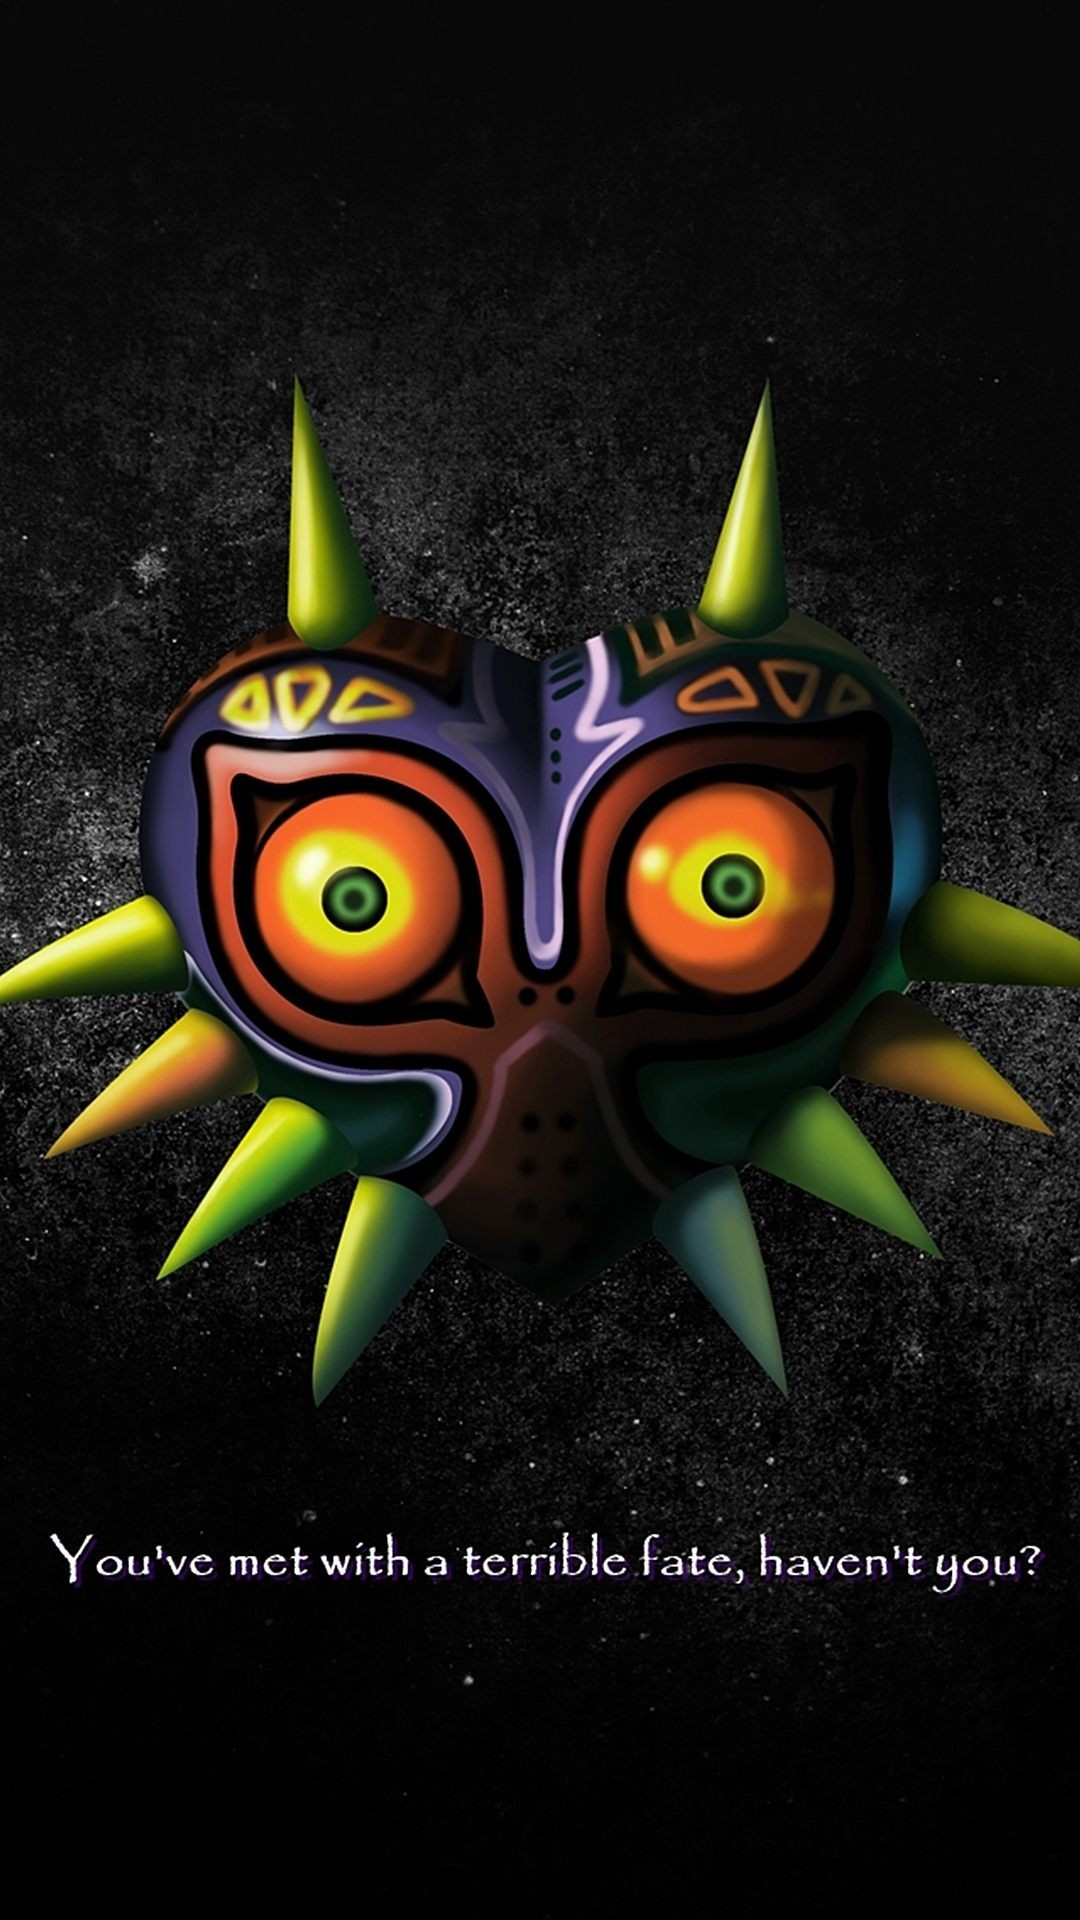 Games Majoras Mask iPhone 6 Plus Wallpapers – link, loz iPhone 6 Plus  Wallpapers – oot iphon: iPhone 6 plus wallpapers that you should have in  2014 !